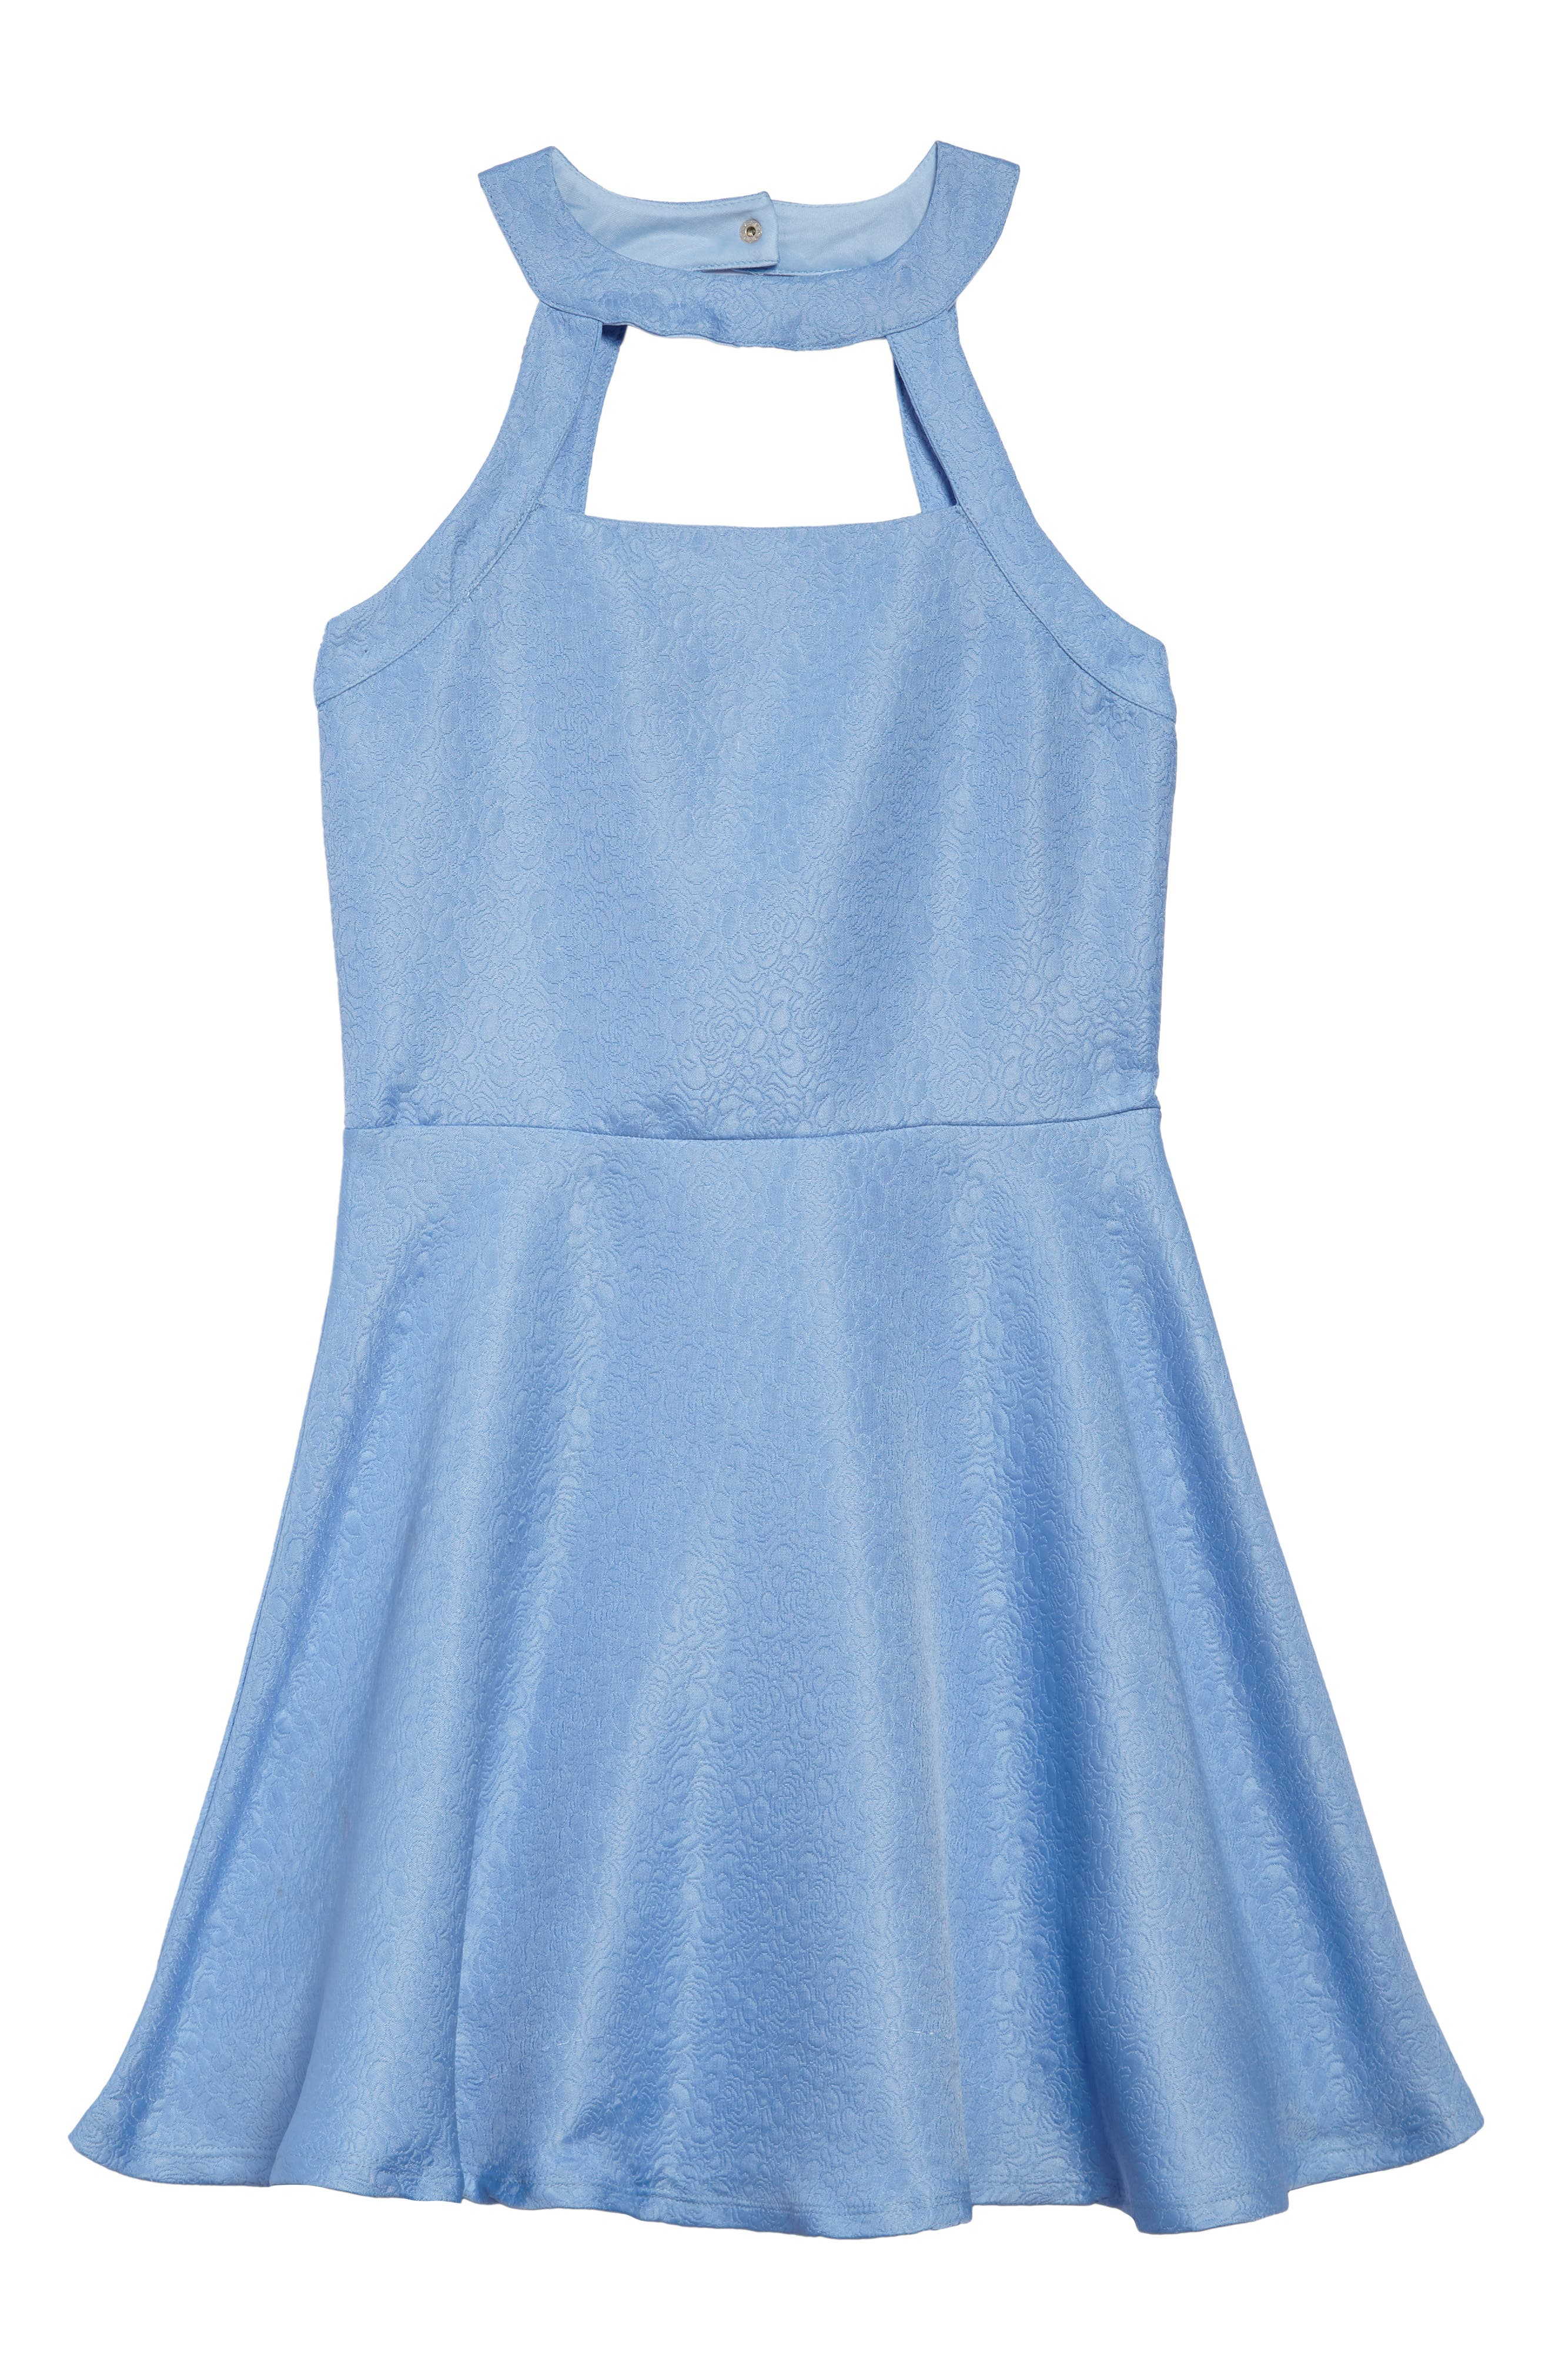 Miss Behave Harper Fit & Flare Dress (Big Girls)